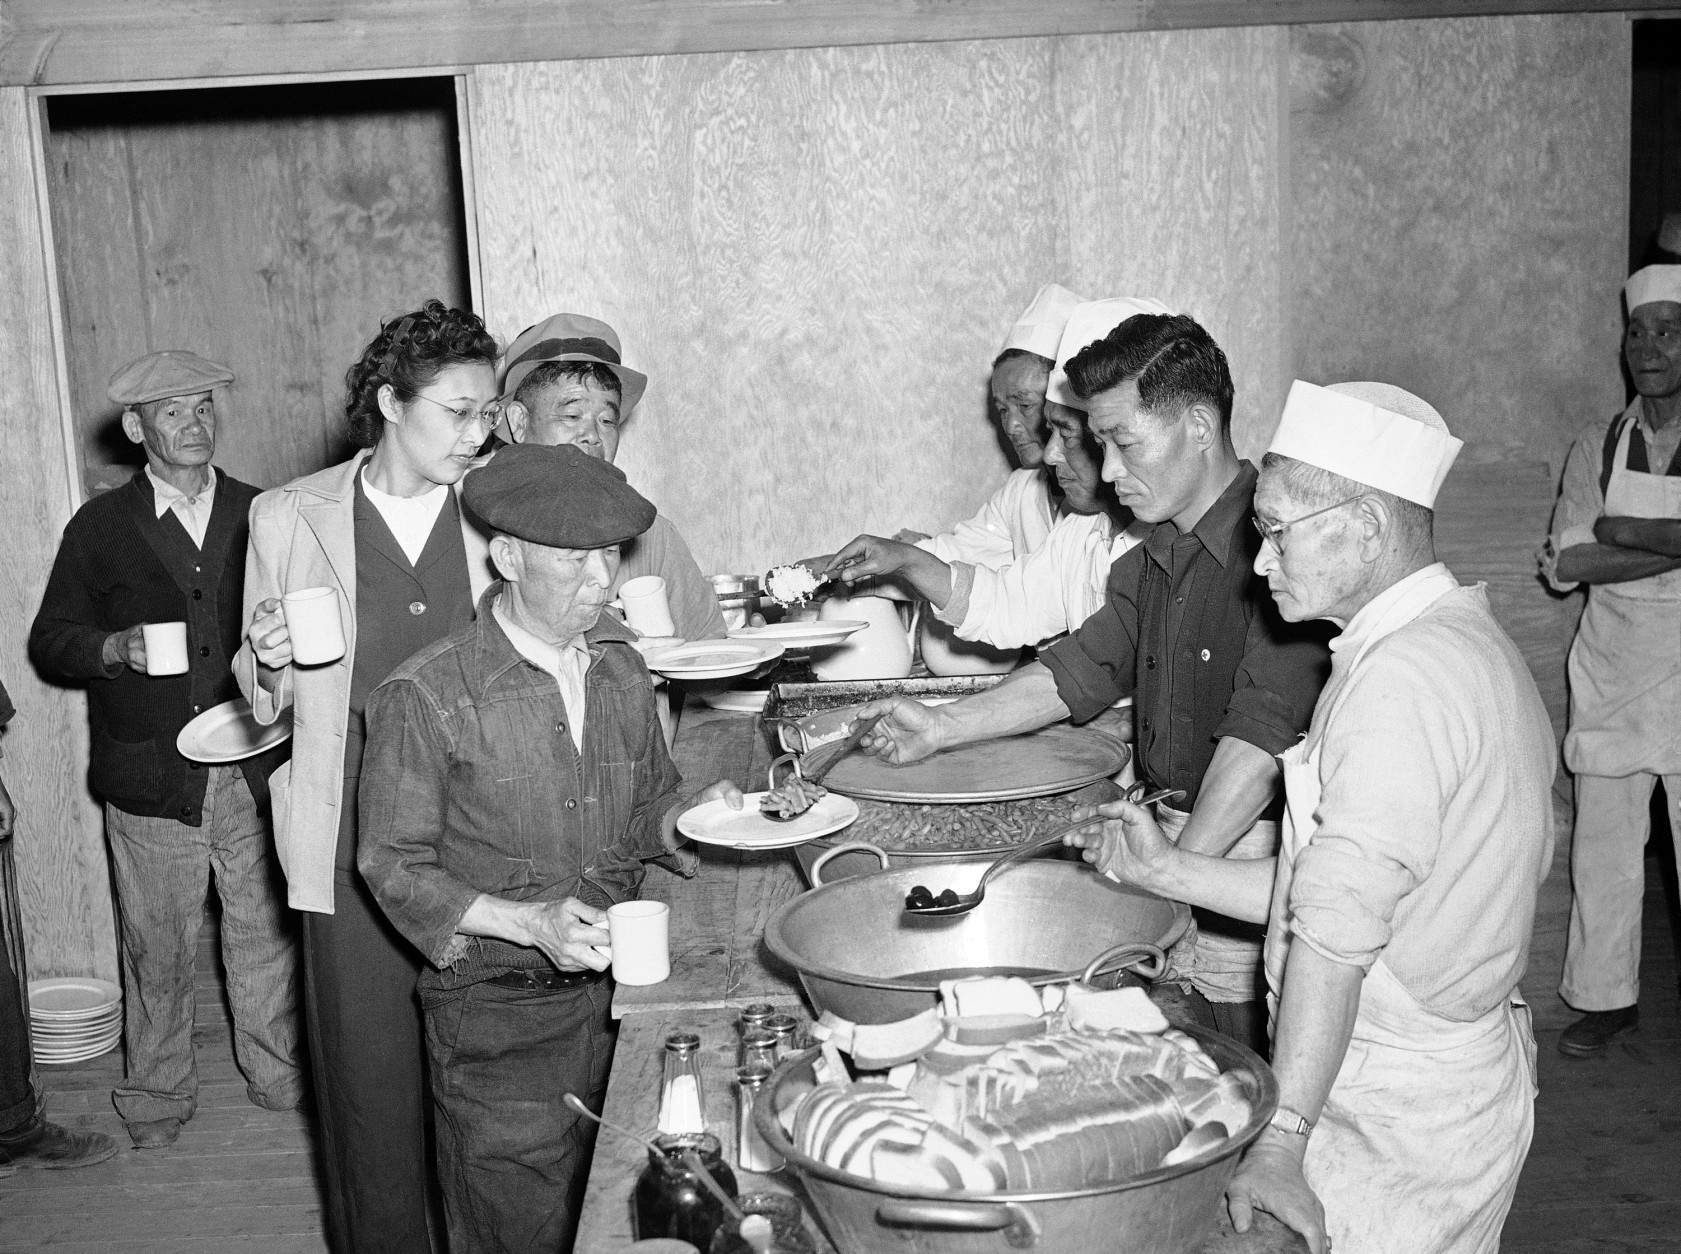 Japanese removed from their Los Angeles homes line up at the government's alien camp at Manzanar, Calif. March 23, 1942 for their first meal after arrival at the camp. Rice, Beans, Prunes bread were included in the menu. (AP Photo)